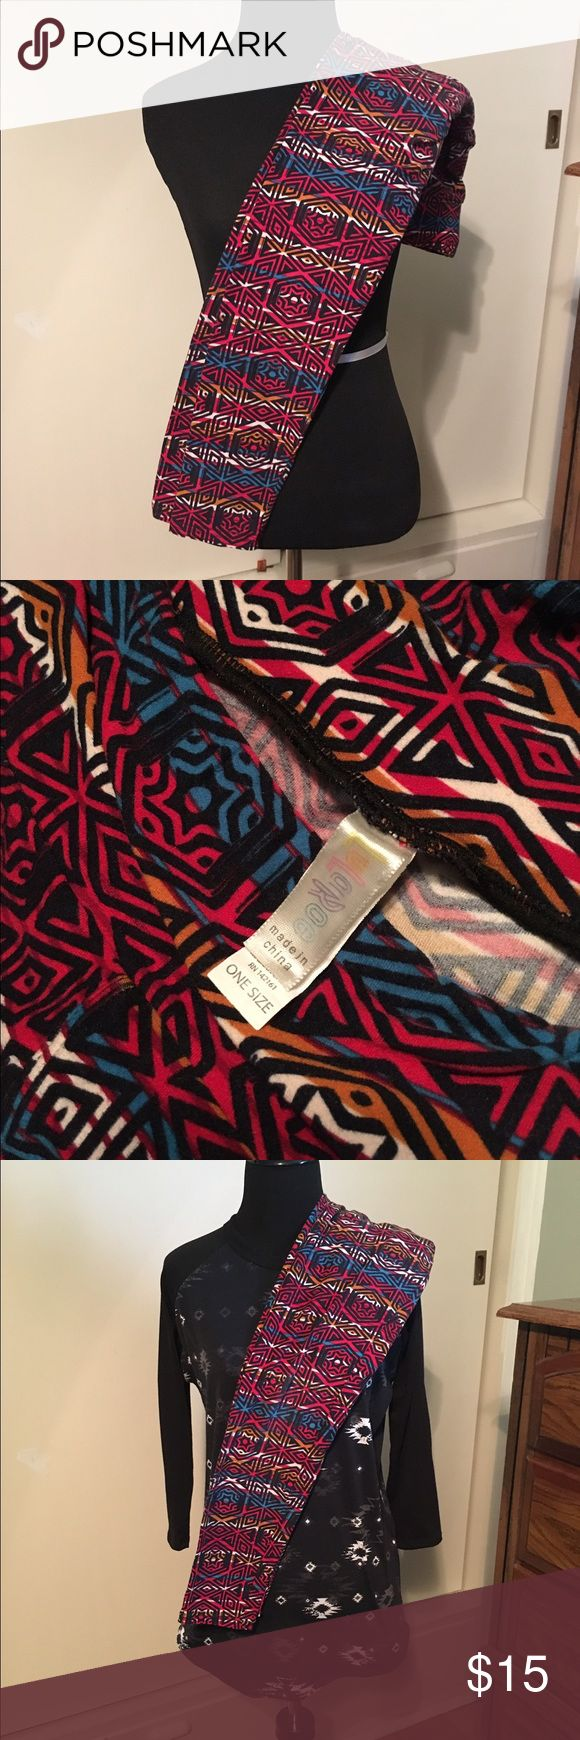 LuLaRoe OS Leggings! Cute printed LuLaRoe leggings. These have been gently loved, but washed according to LLR directions. Made in China.                                   Pair these leggings with the shown black Randy tee, which can be found in my closet! LuLaRoe Pants Leggings